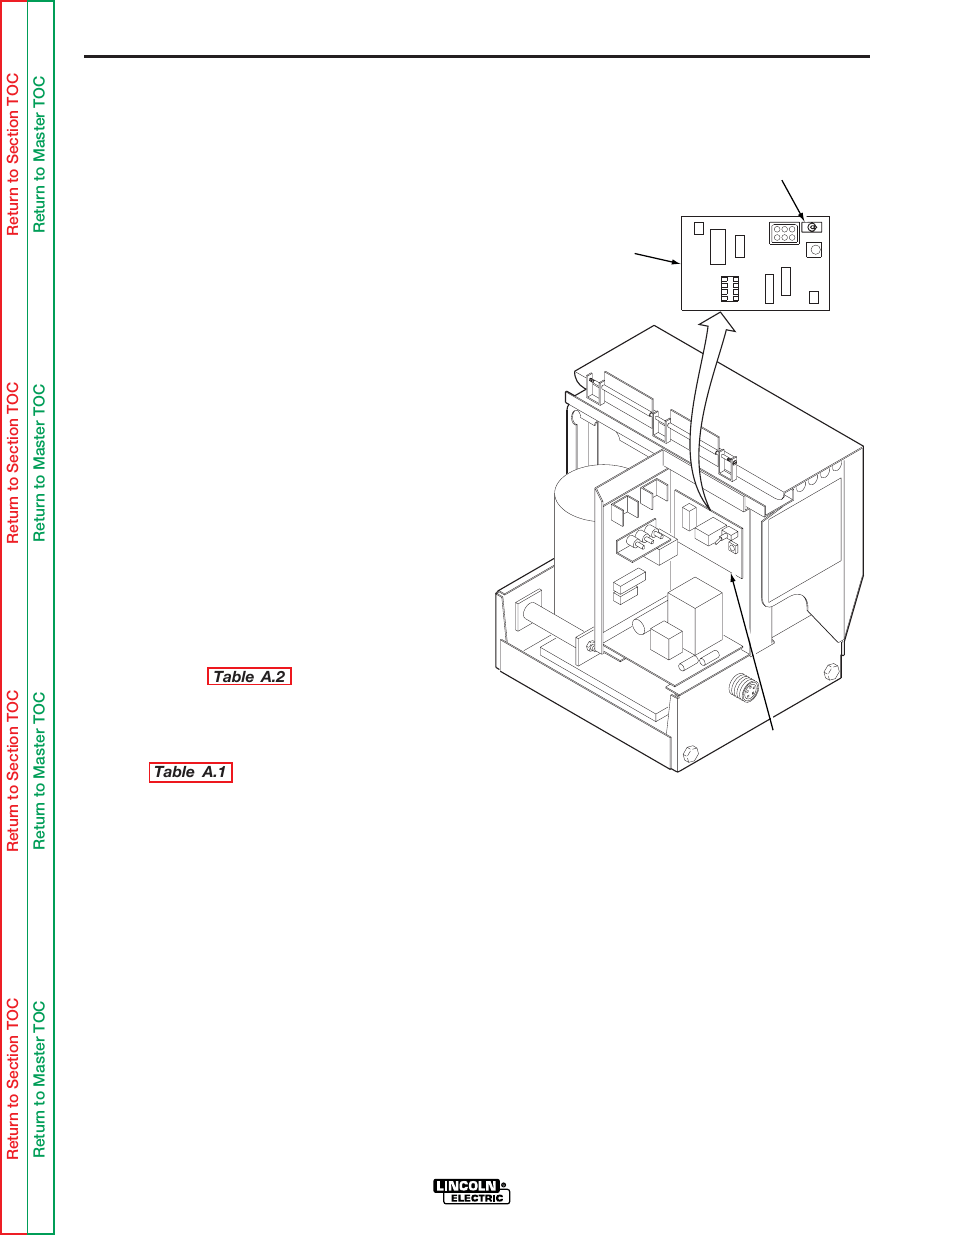 medium resolution of ln 8s and ln 8se and converted ln 8n and ln 8ne installation lincoln electric ln 8 svm132 a user manual page 10 99